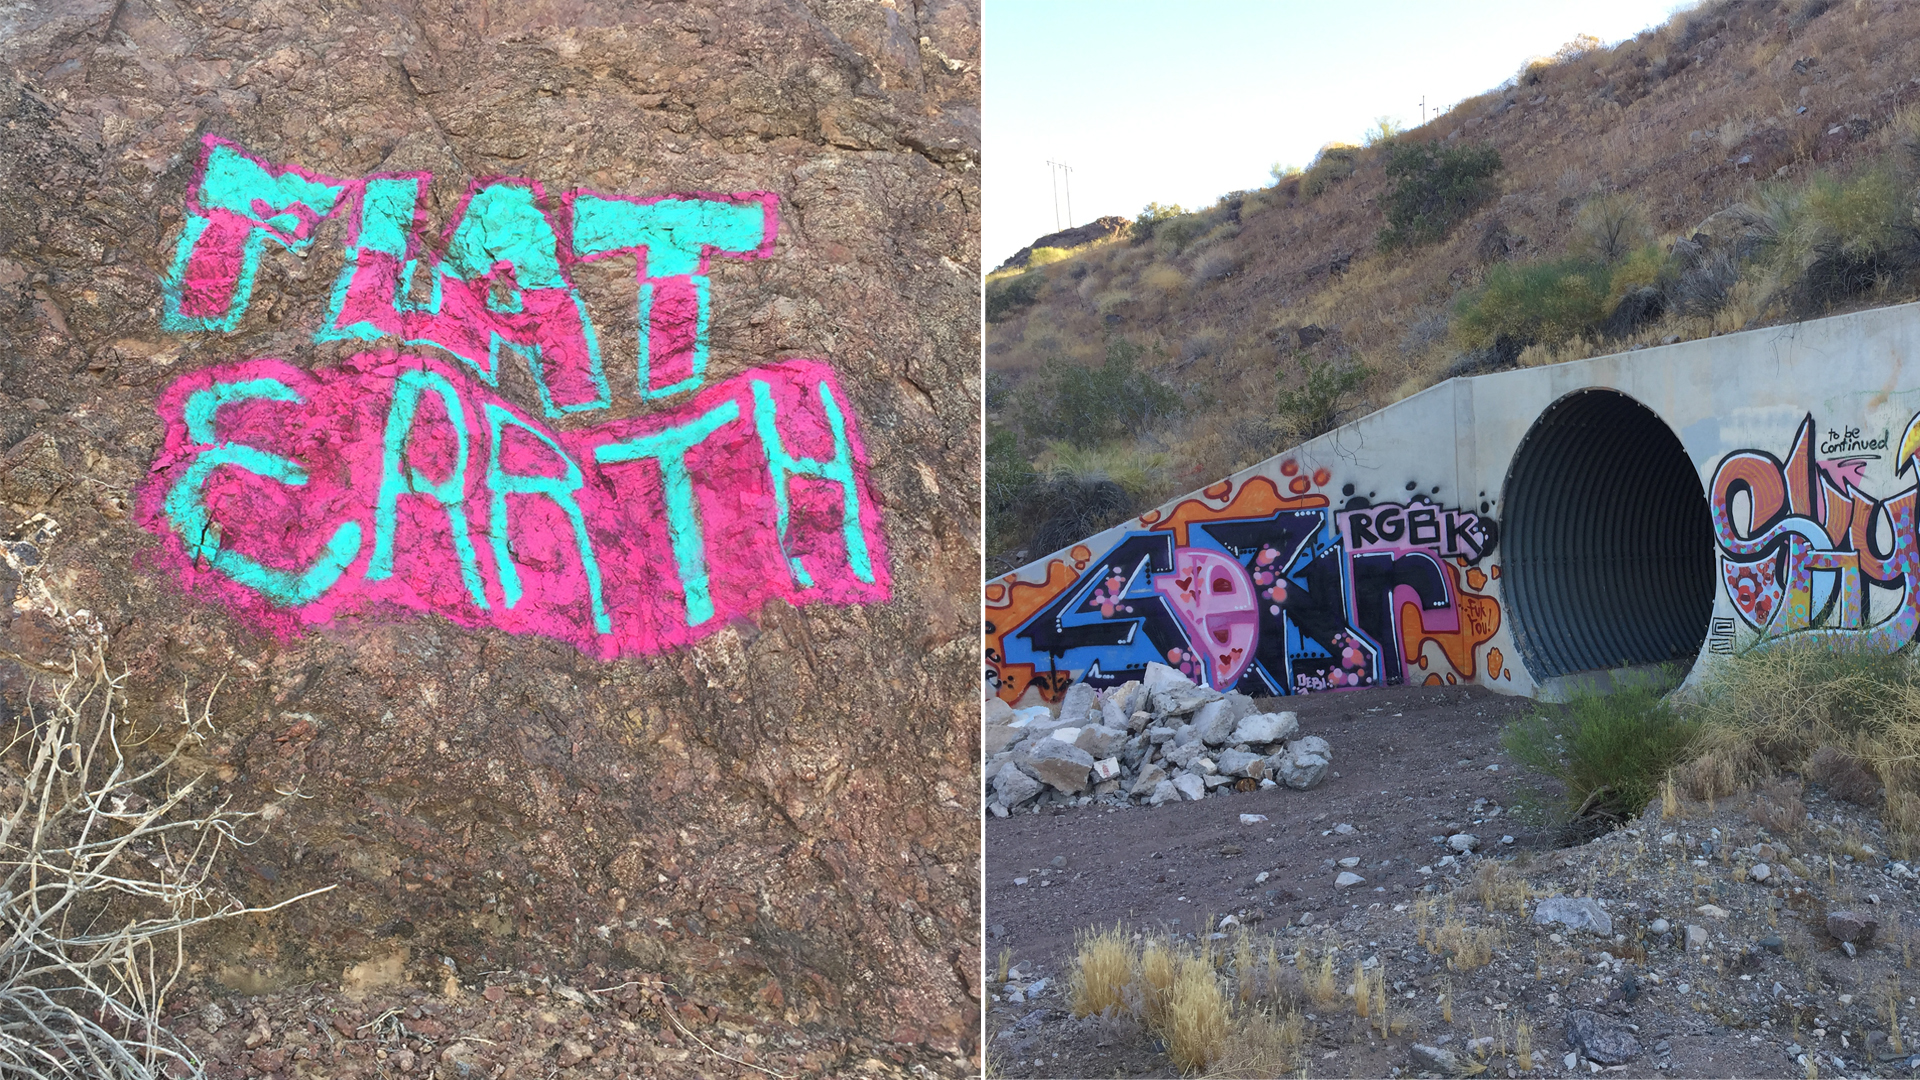 The graffiti Skyler Gene Butts is suspected of creating is seen in undated photos provided by the San Bernardino County Sheriff's Department on May 24, 2019.